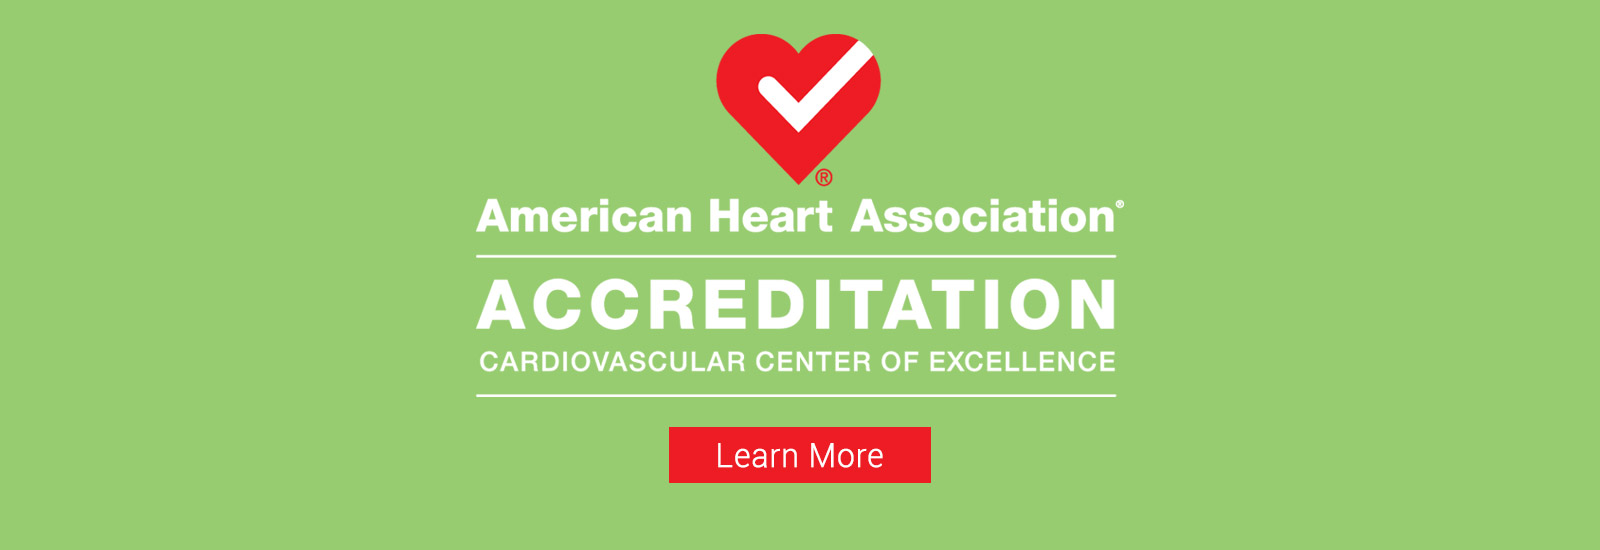 Cardiovascular Center of Excellence